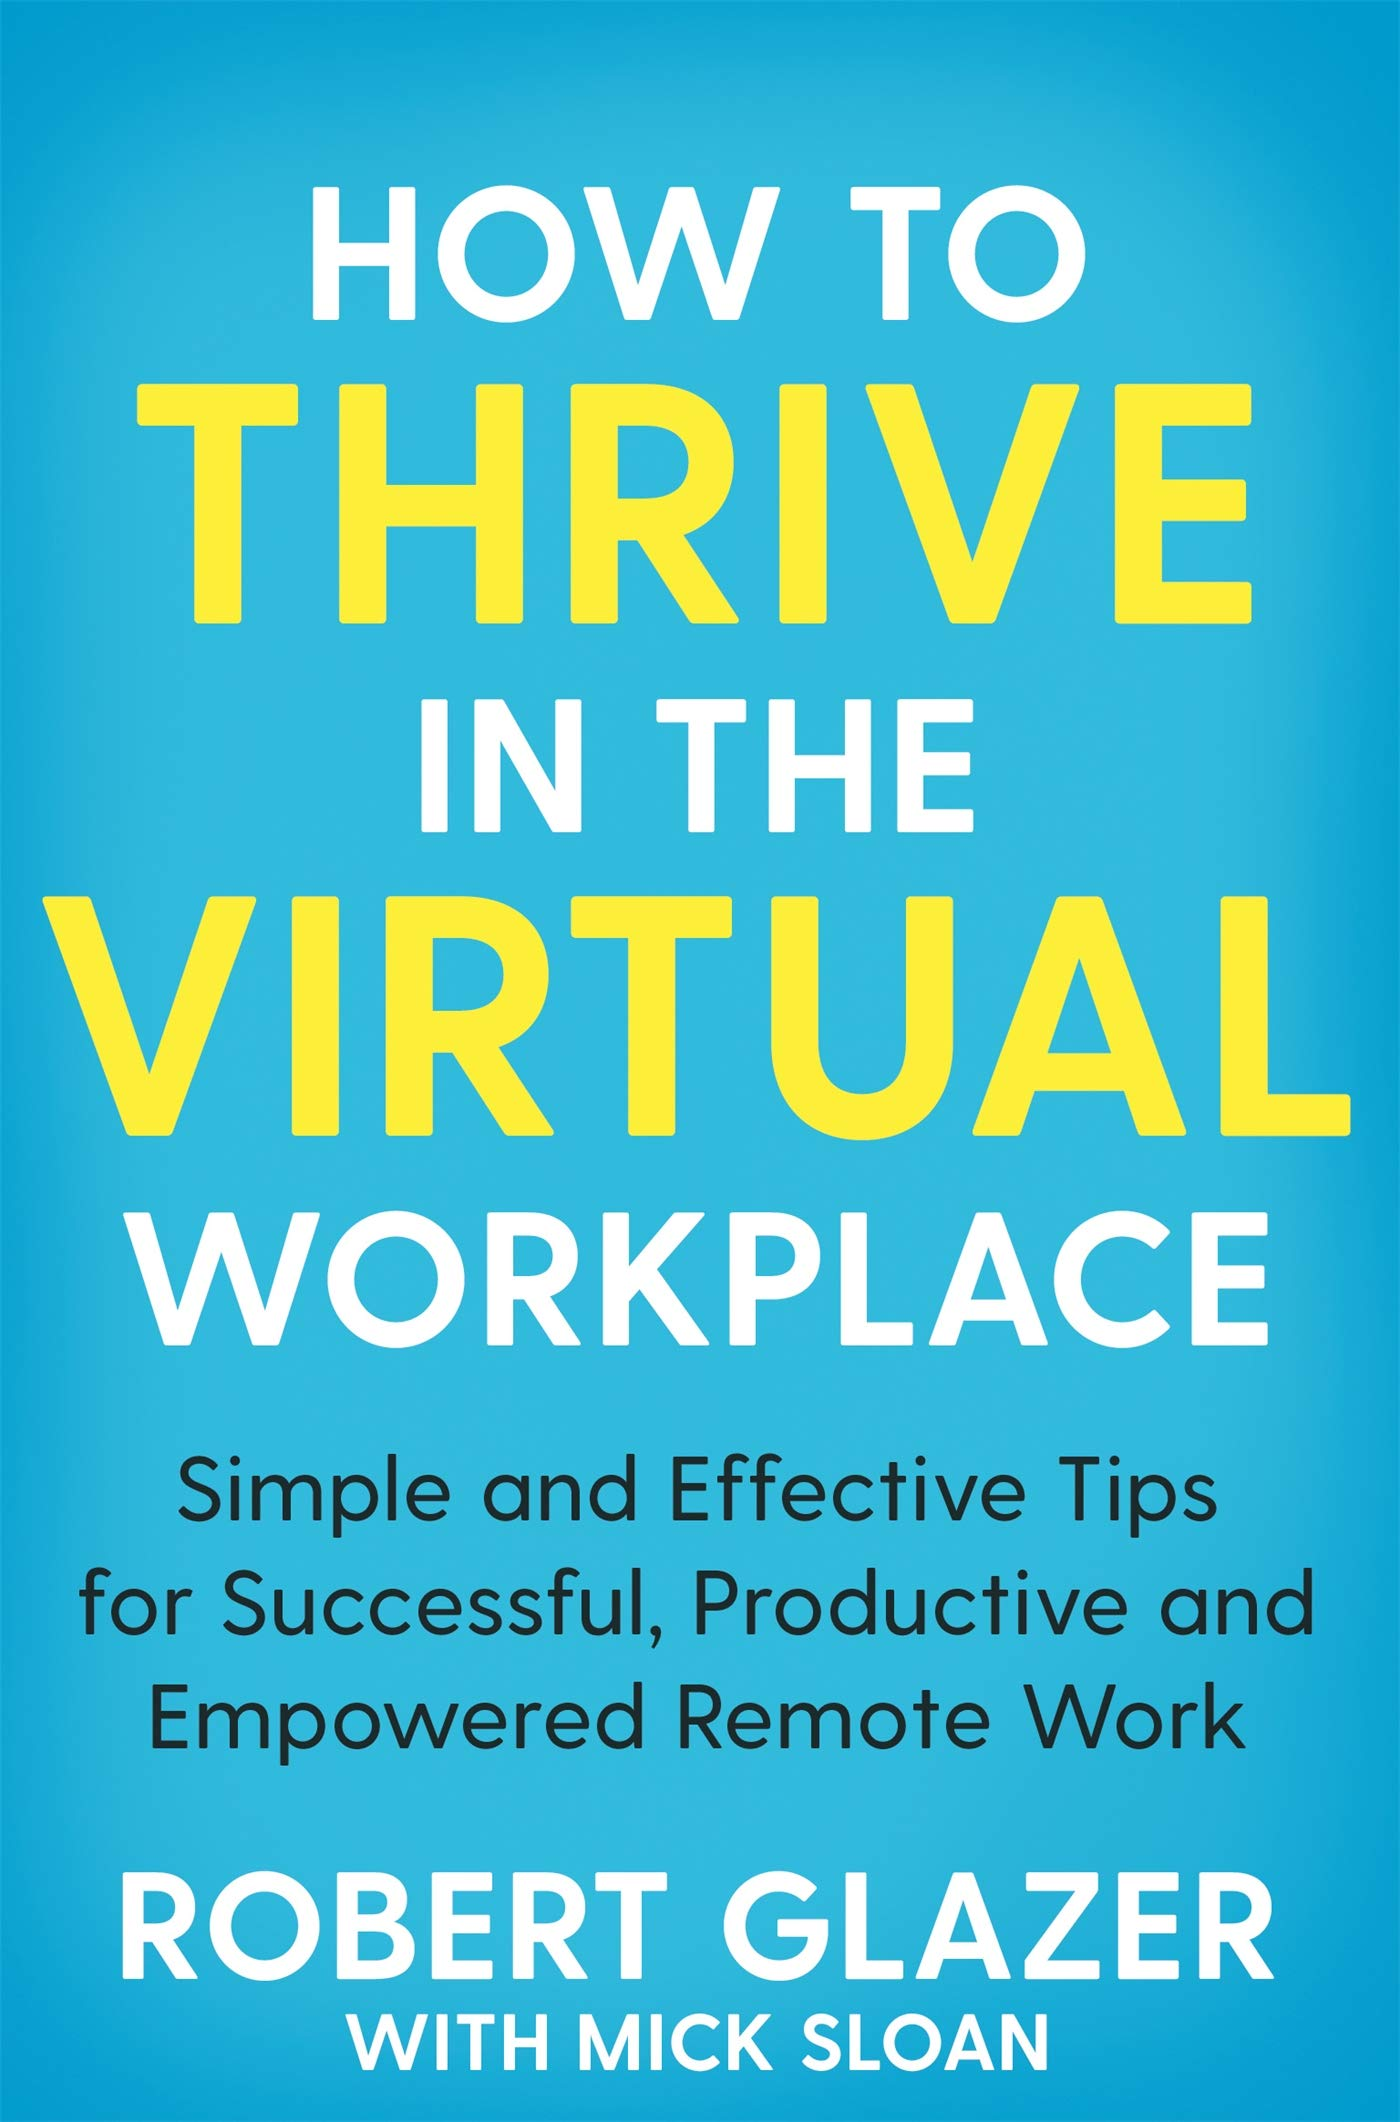 How to Thrive in the Virtual Workplace: Simple and Effective Tips for Successful, Productive and Empowered Remote Work